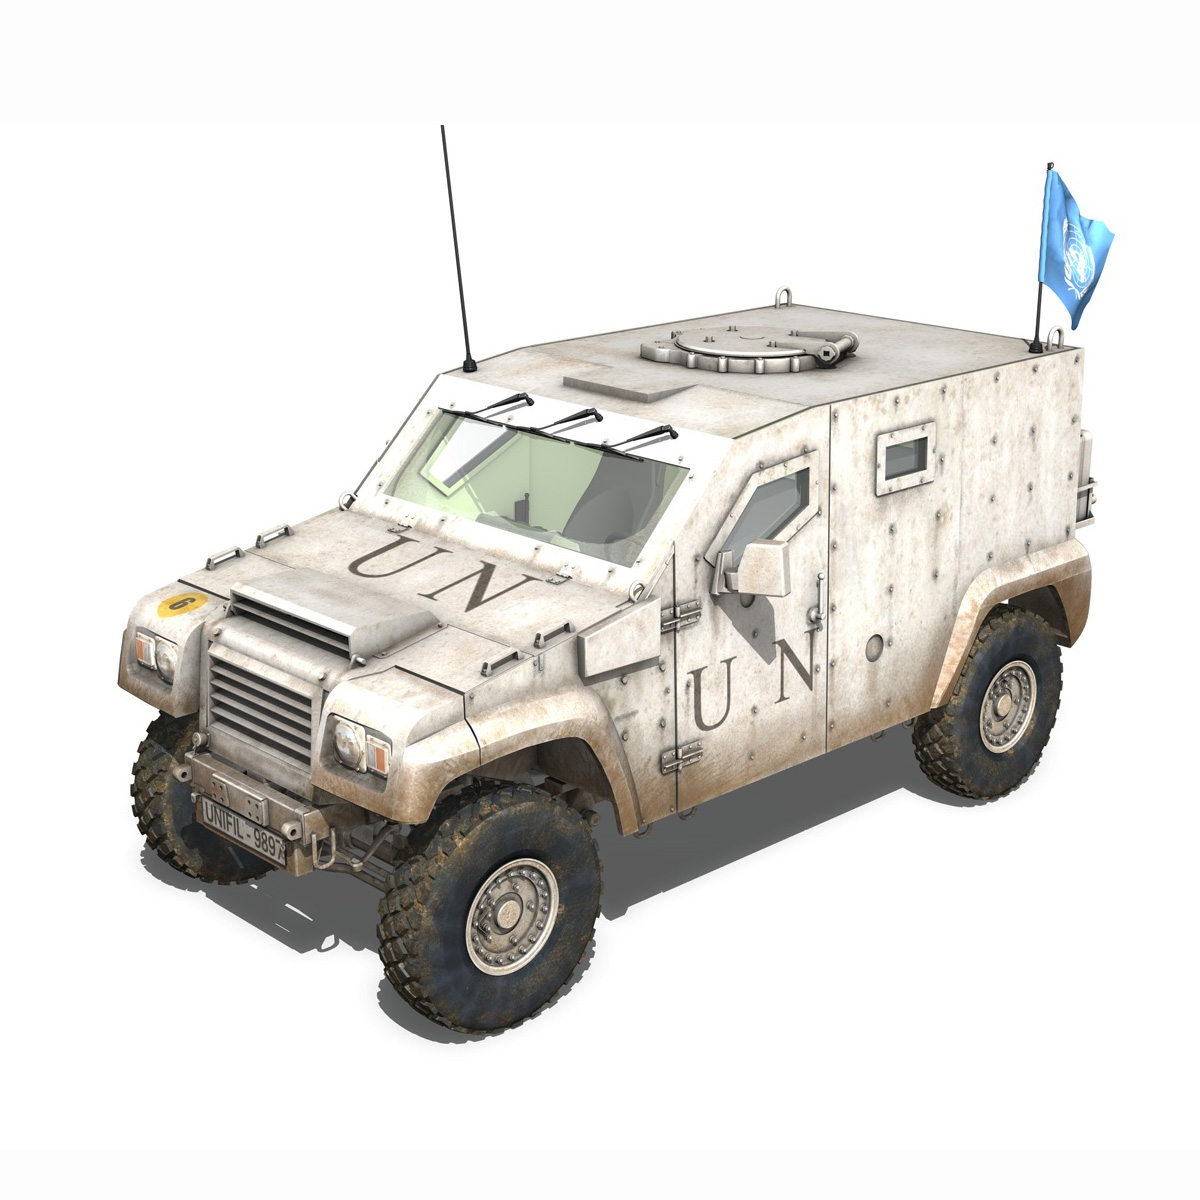 auverland panhard pvp – united nations 3d model 3ds fbx c4d lwo obj 190104